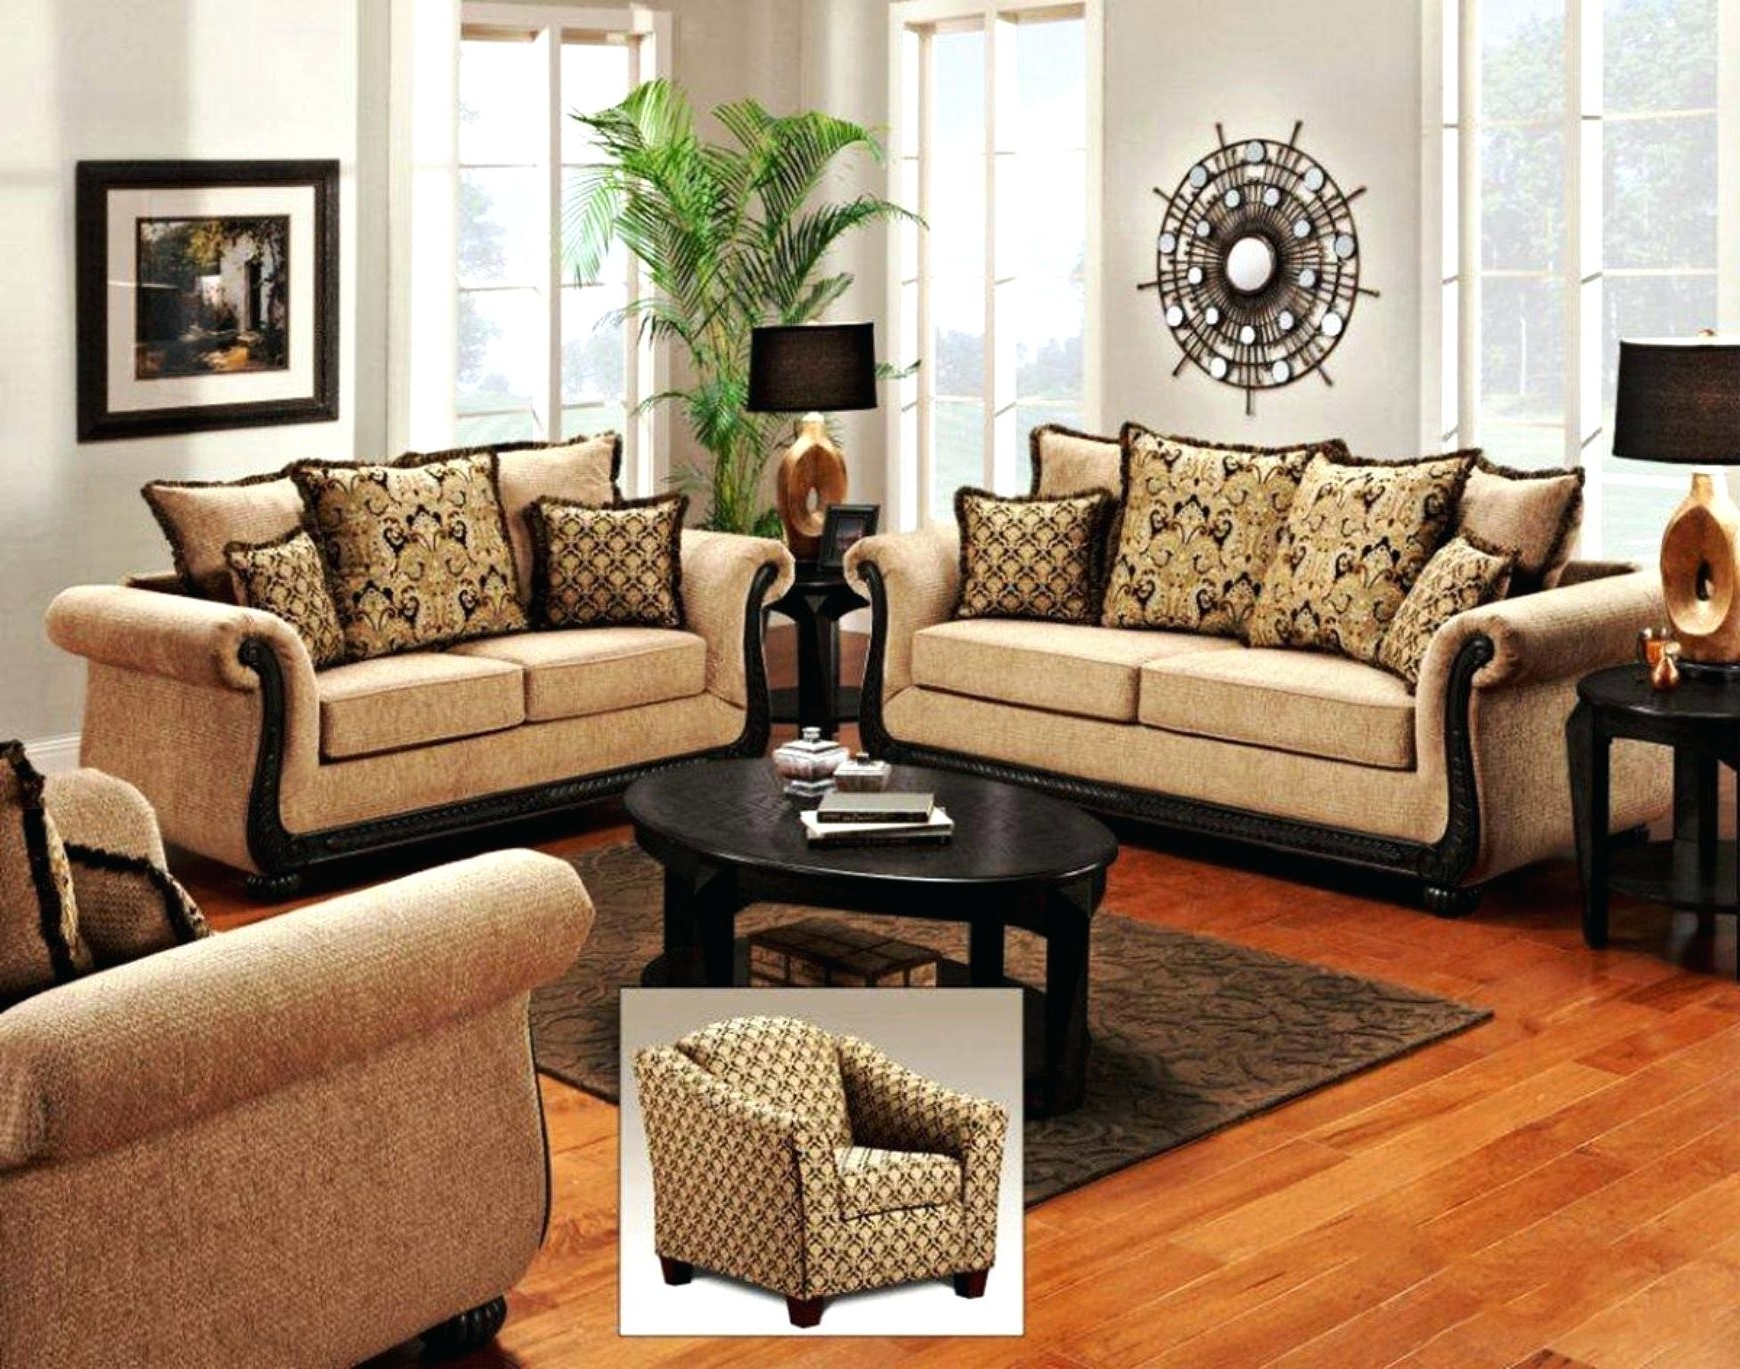 2018 Dillards Sofas S Sleeper – Ncgeconference Intended For Dillards Sectional Sofas (View 14 of 20)